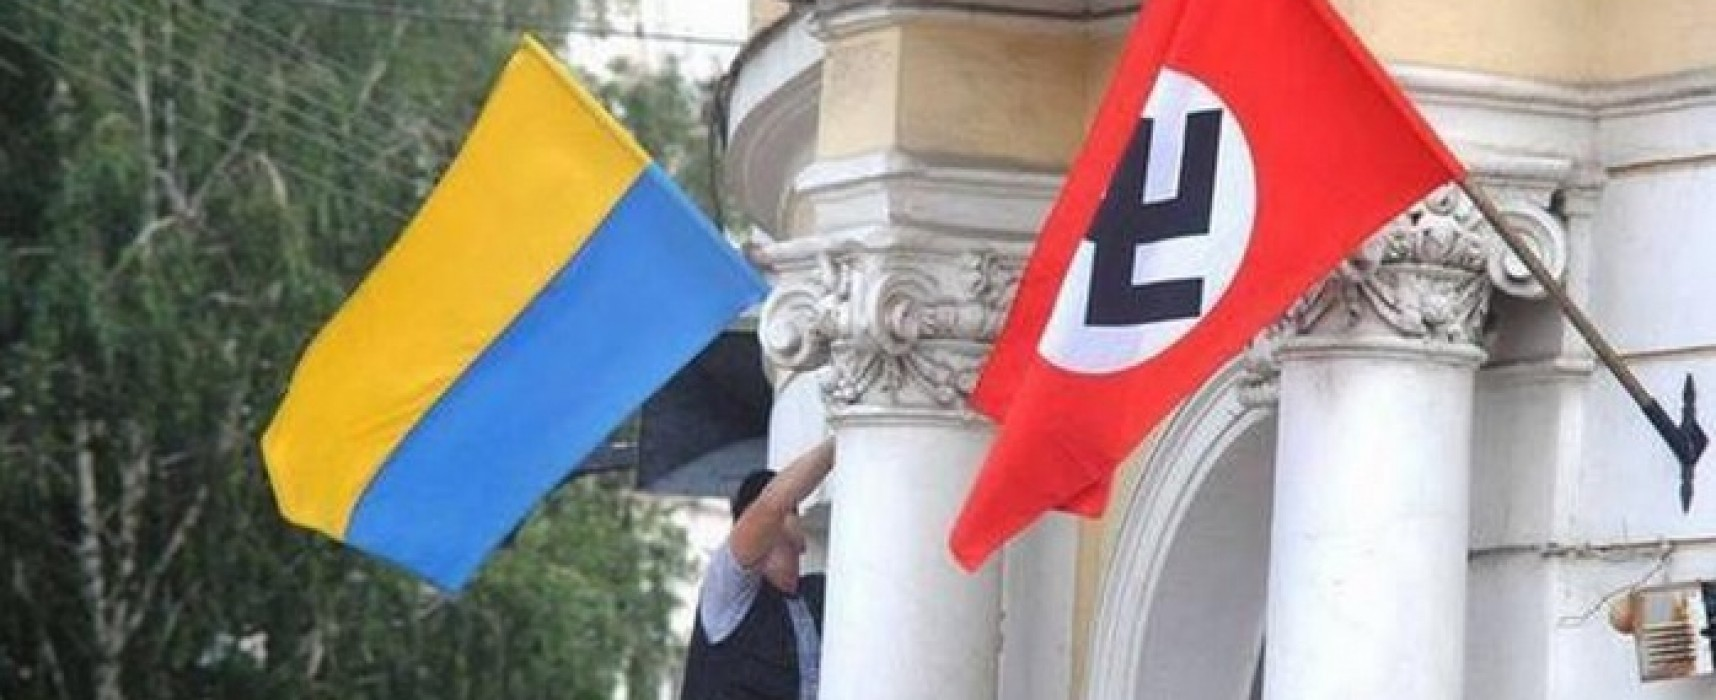 Fake: Flag with Nazi Swastika in Ukraine